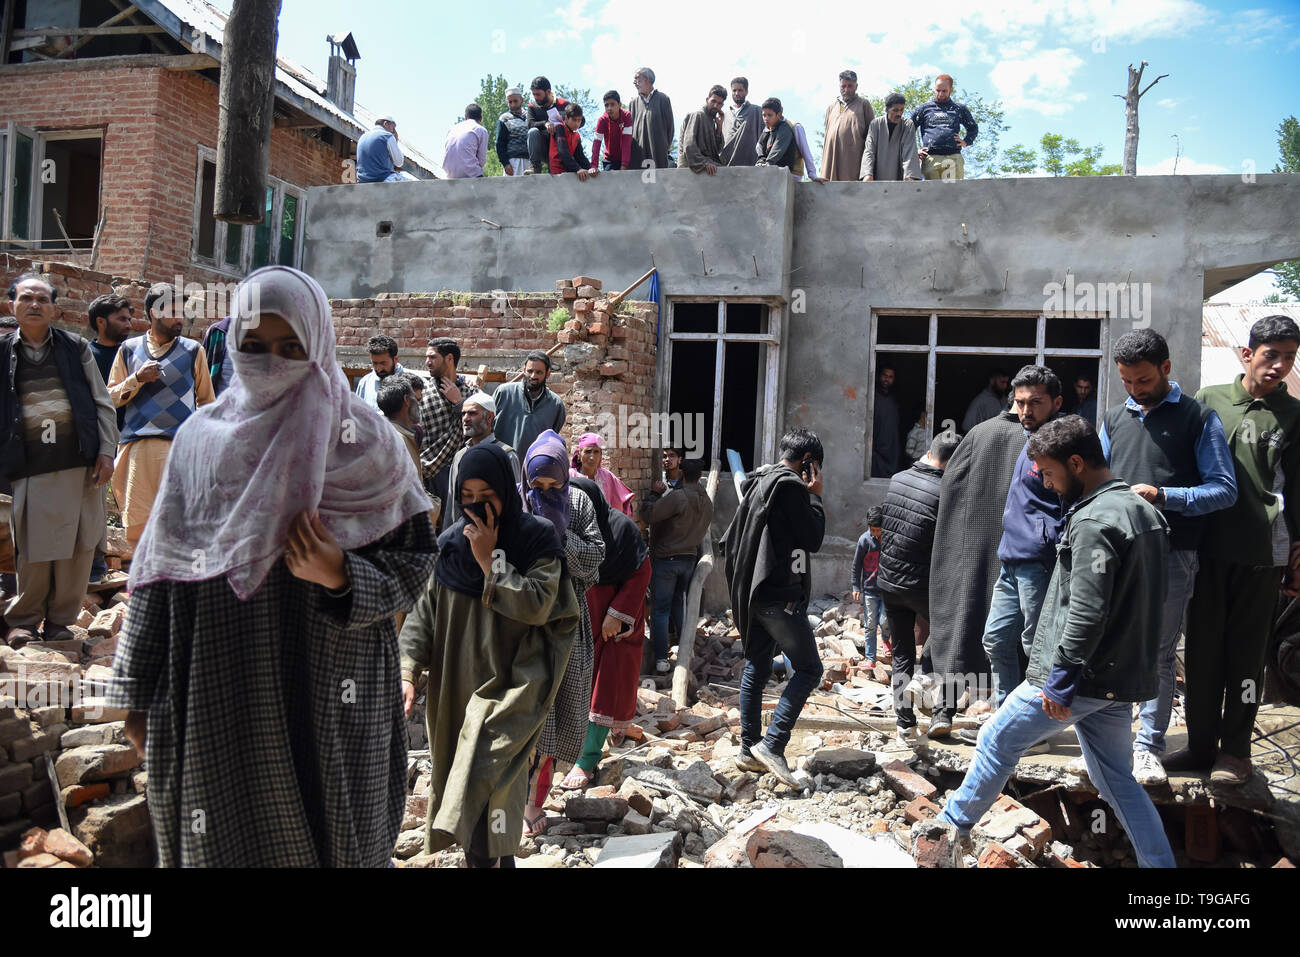 Kashmiri residents are seen entering partially damaged house after a gunfight in Pulwama, South of Srinagar. Four Kashmiri Rebels were killed on Saturday in two separate gunfights in Jammu and Kashmir's Pulwama and Baramulla districts. - Stock Image